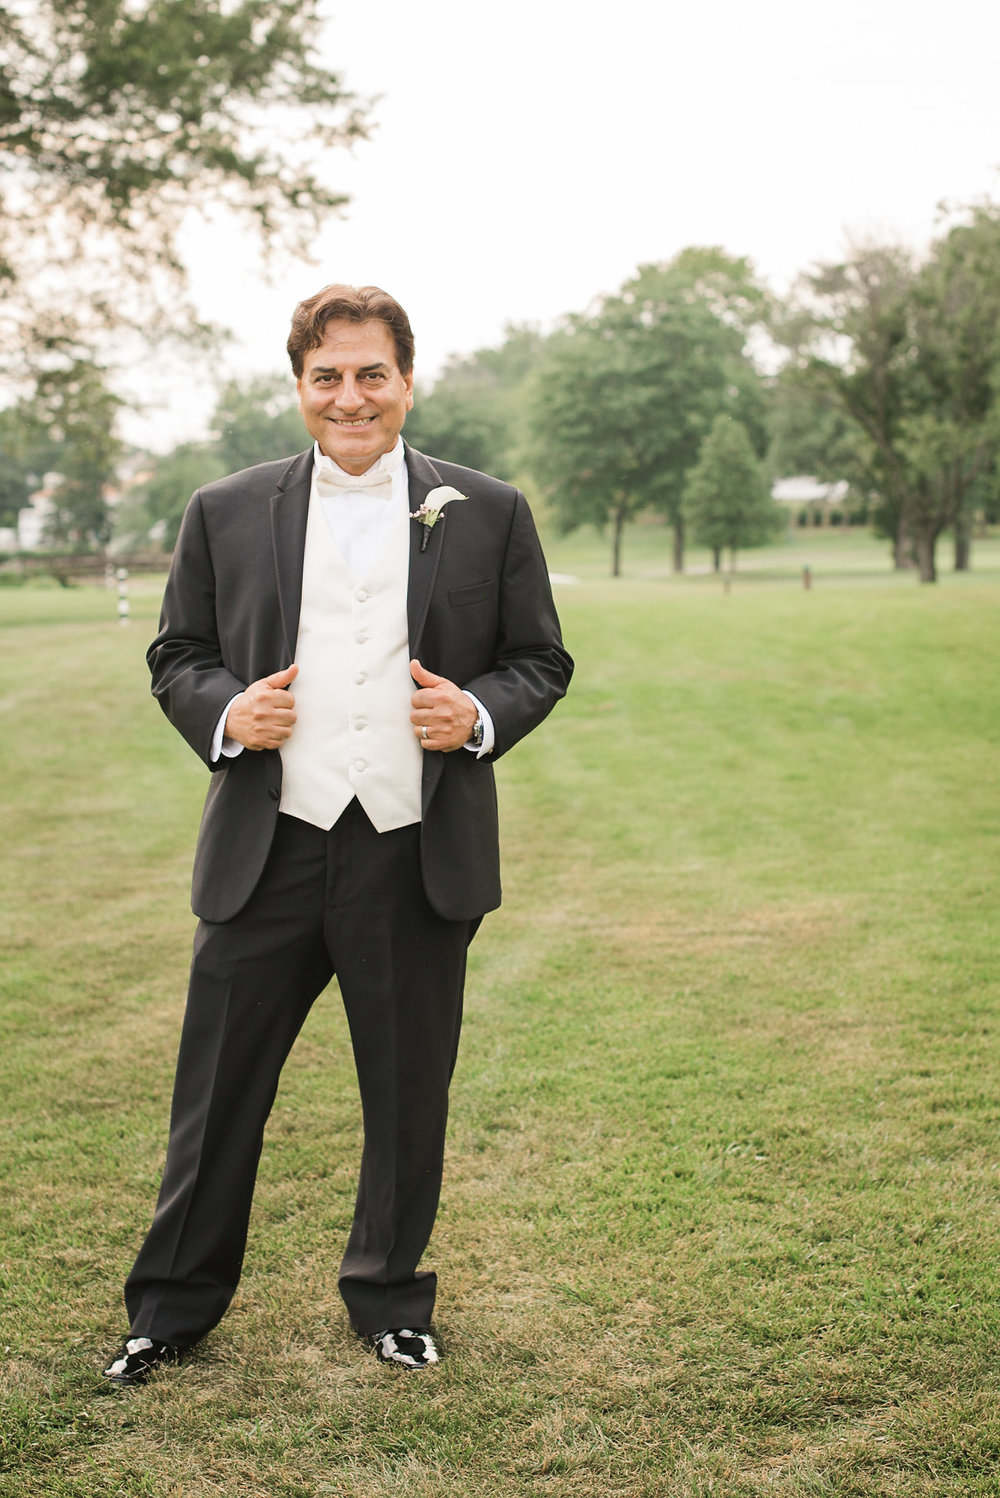 Groom standing on lawn